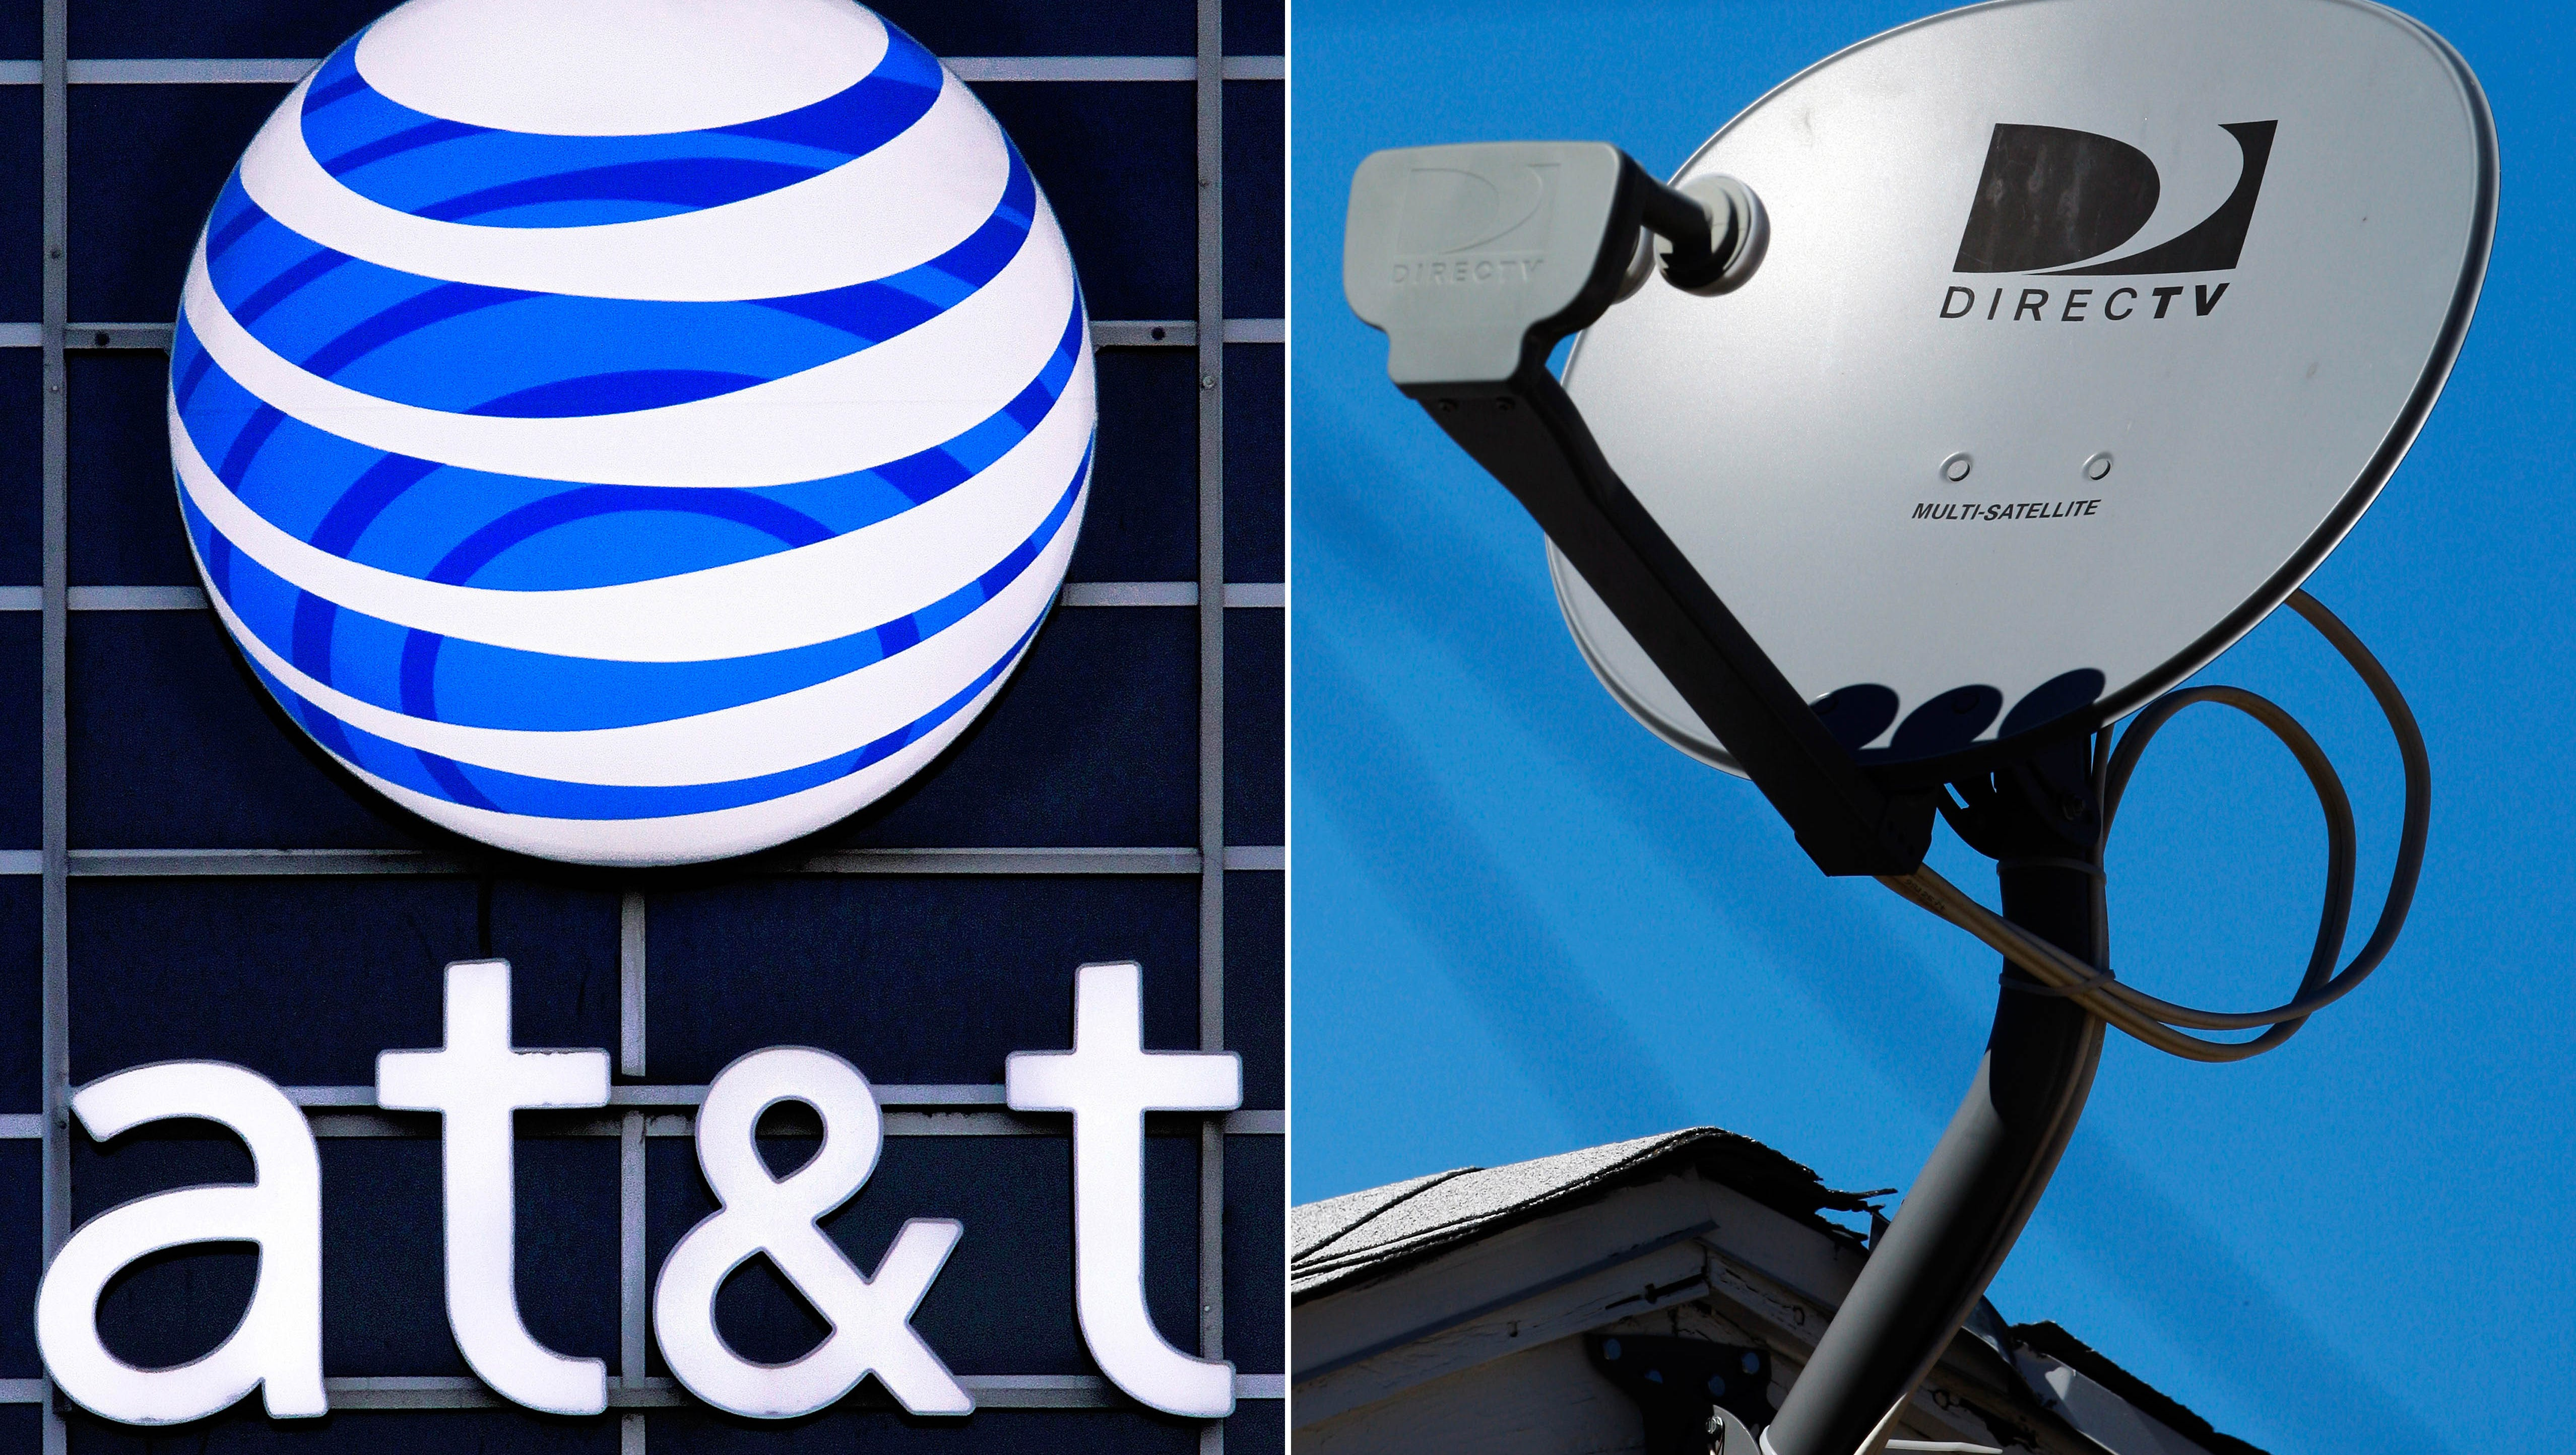 New At T Unlimited Mobile Data Deal Targets Directv Crowd